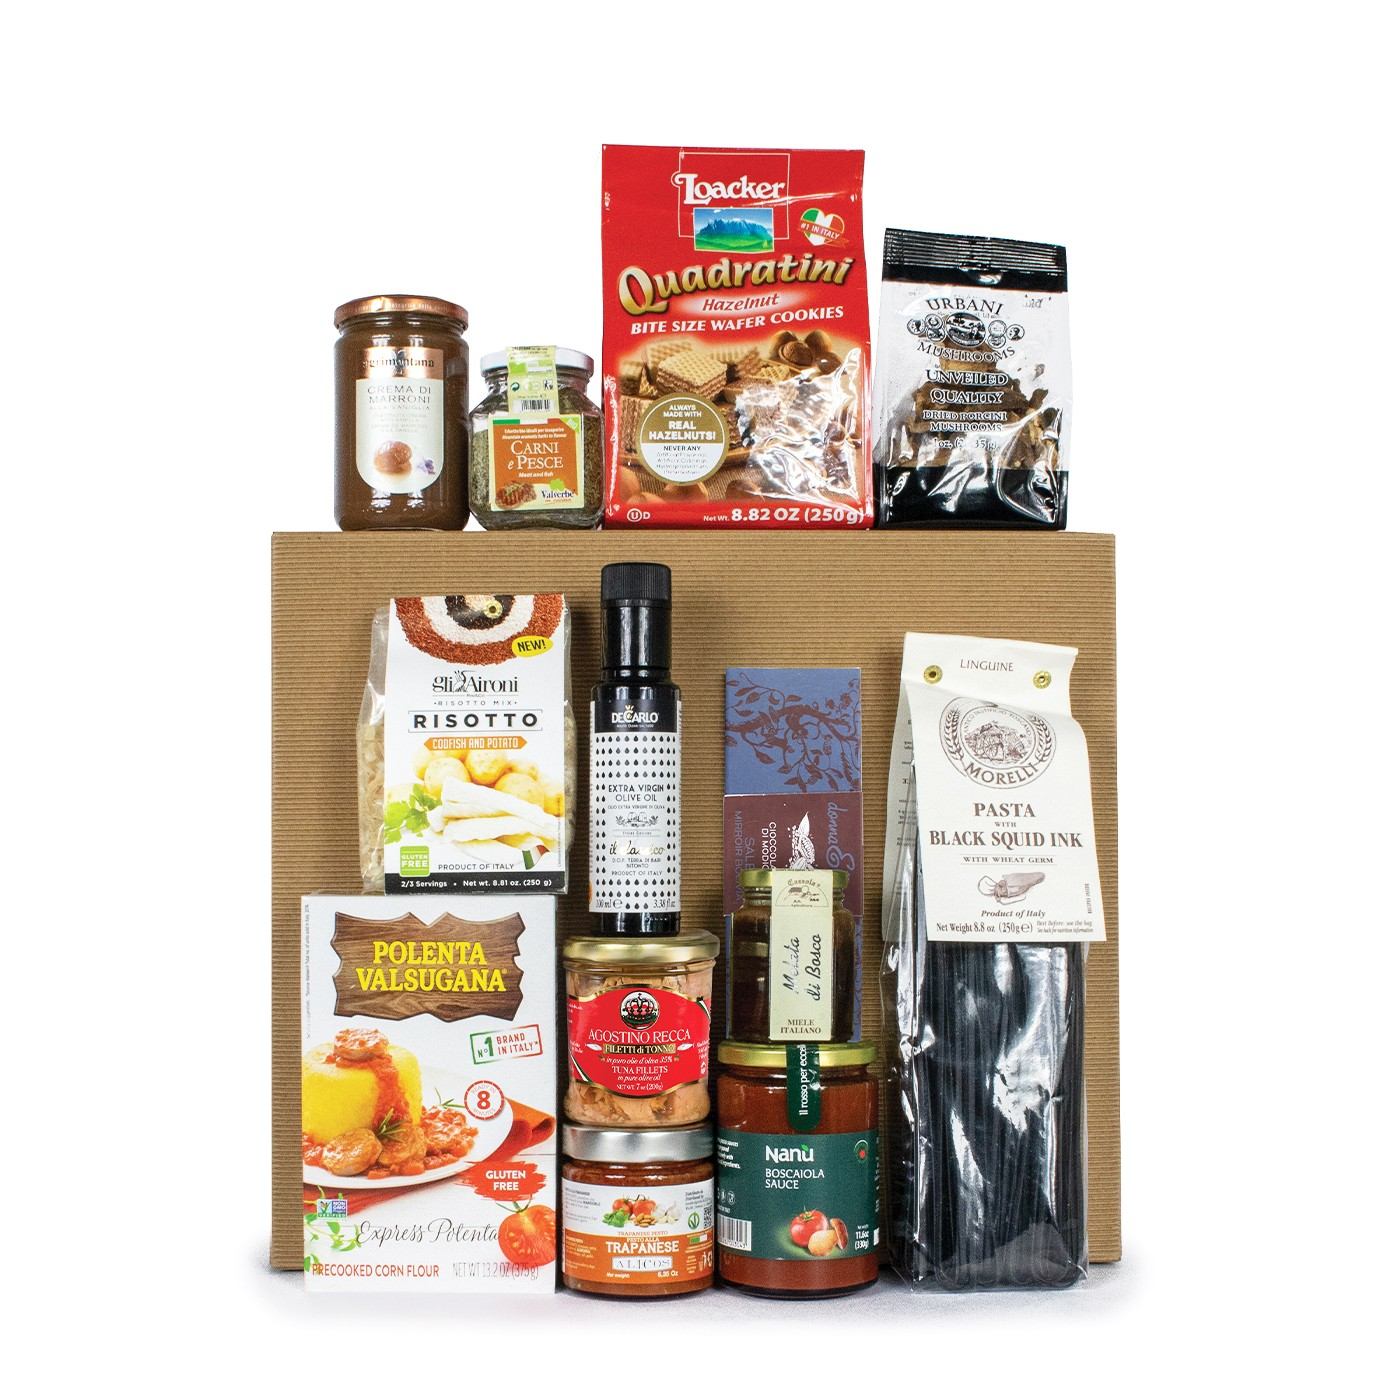 Italian gift basket with Italian specialties